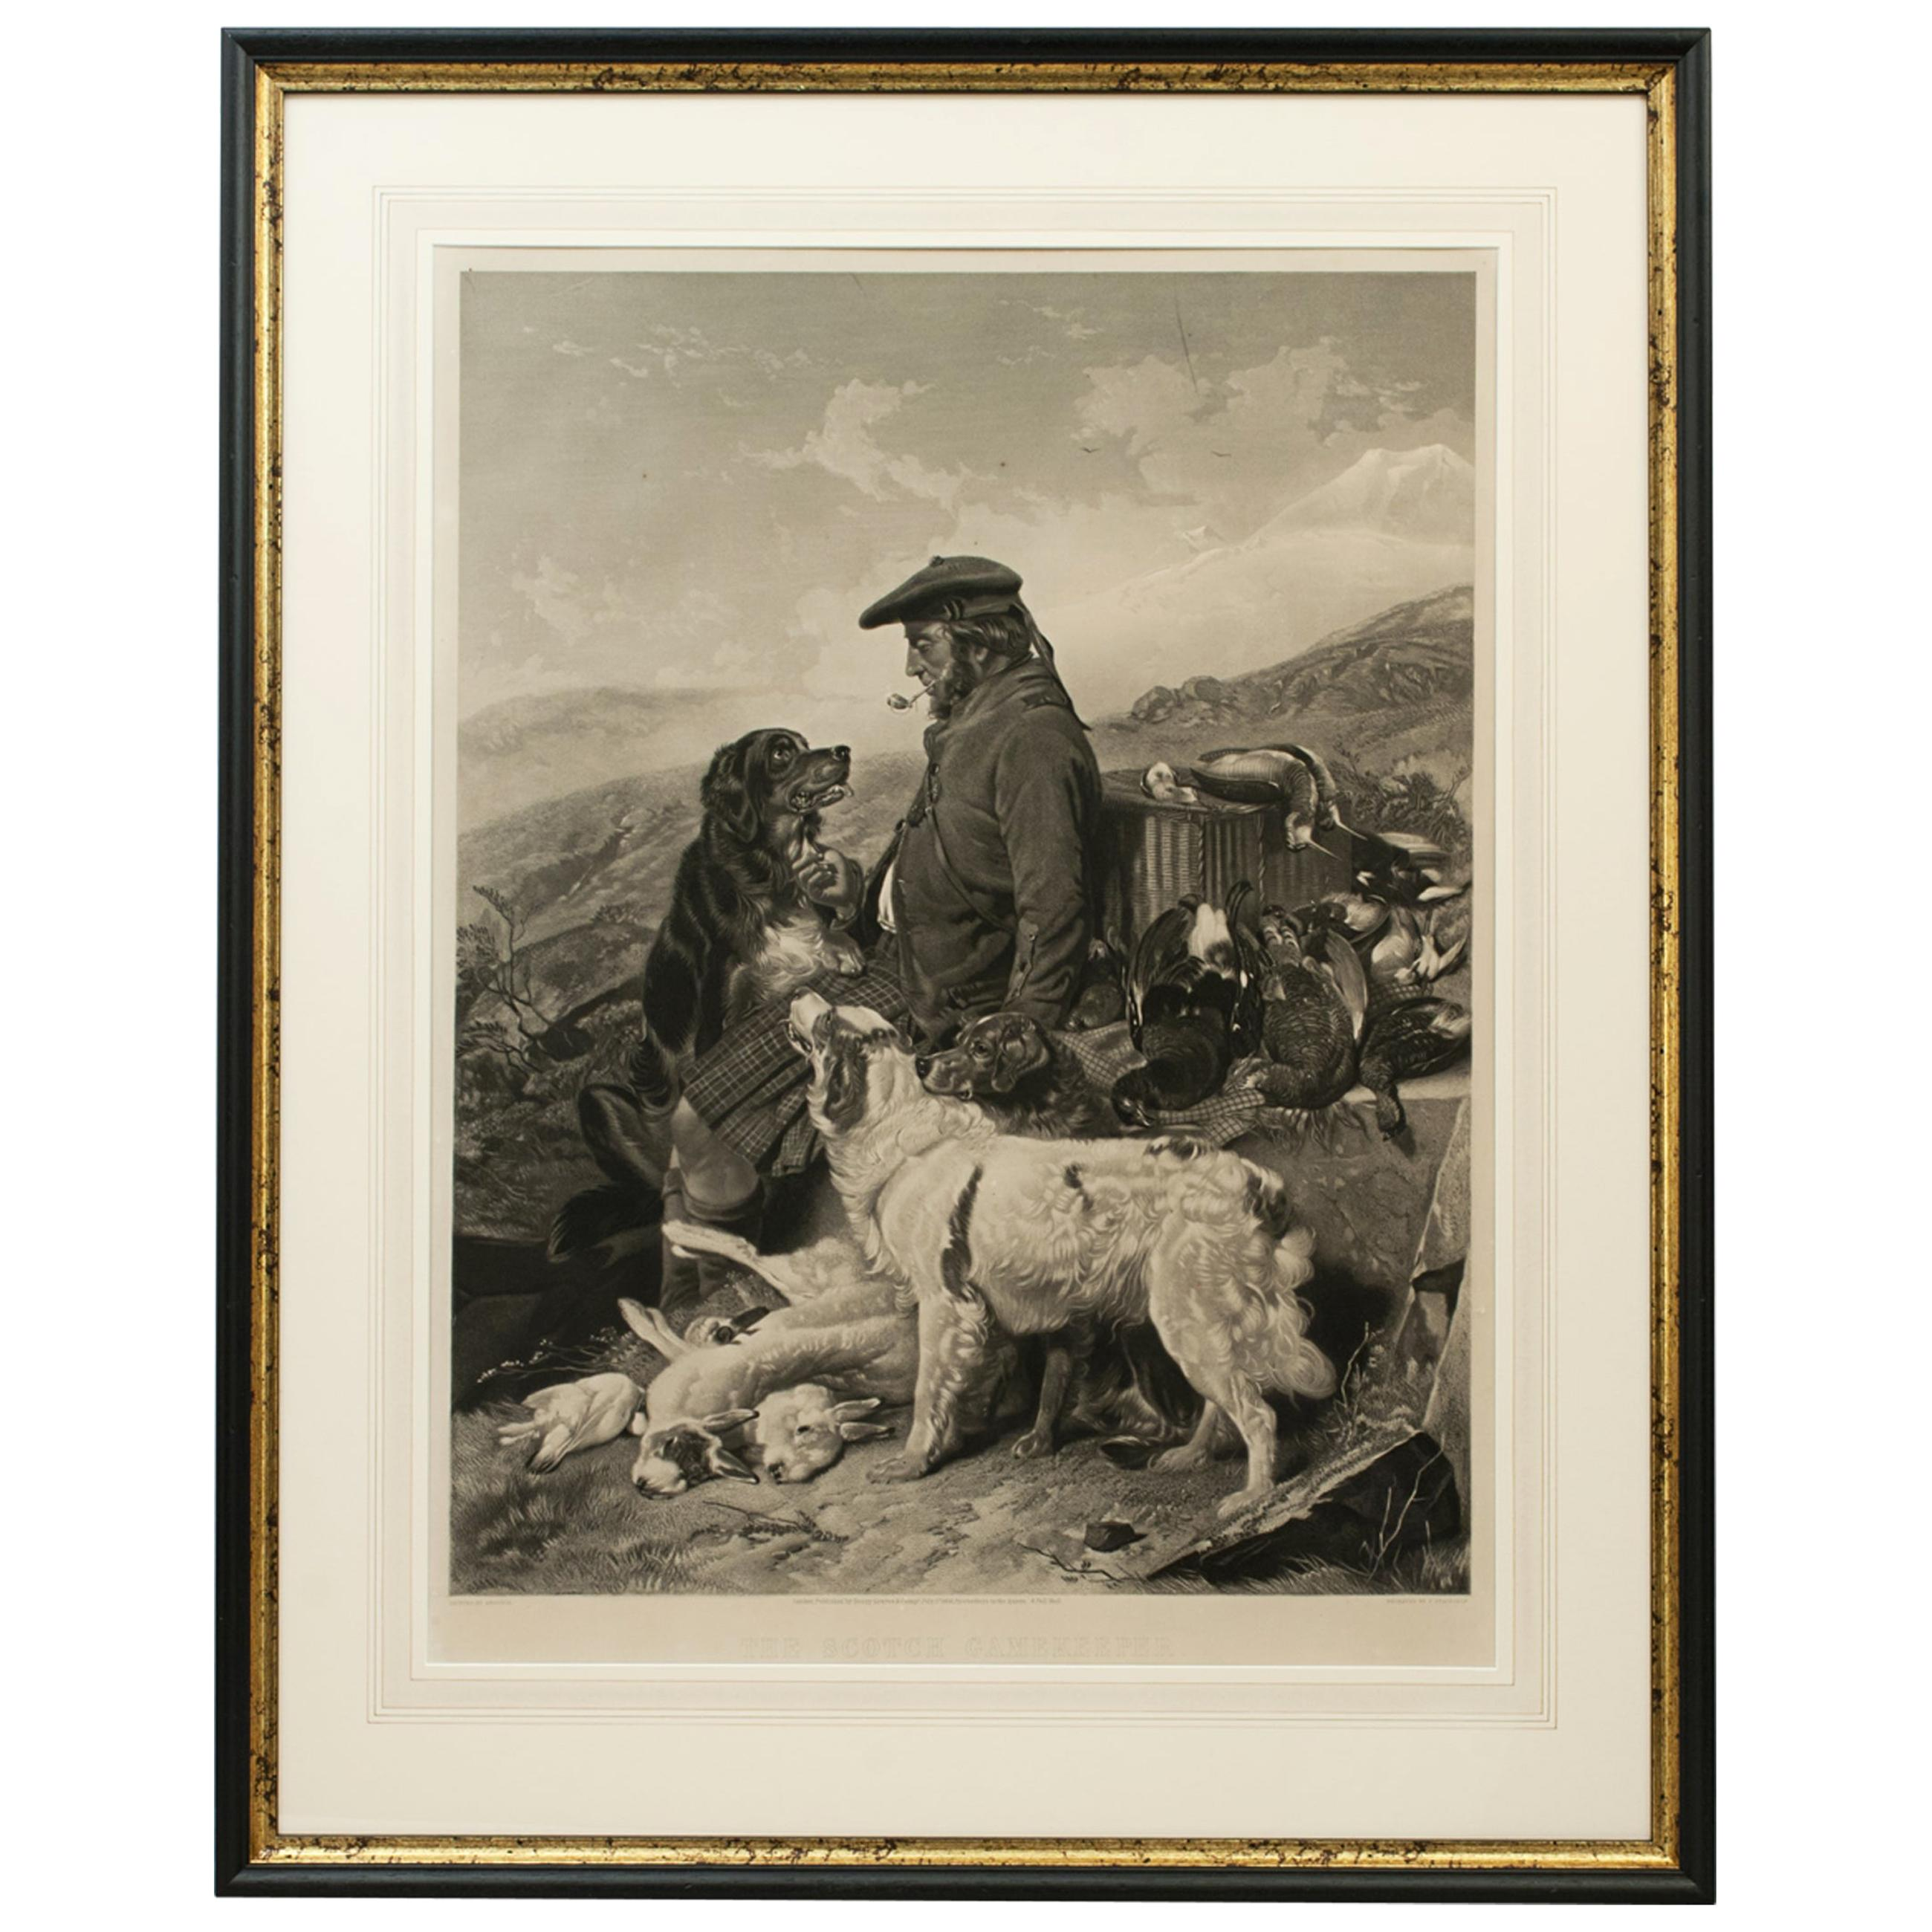 Scottish Shooting Picture, Scottish Gamekeeper by Richard Ansdell